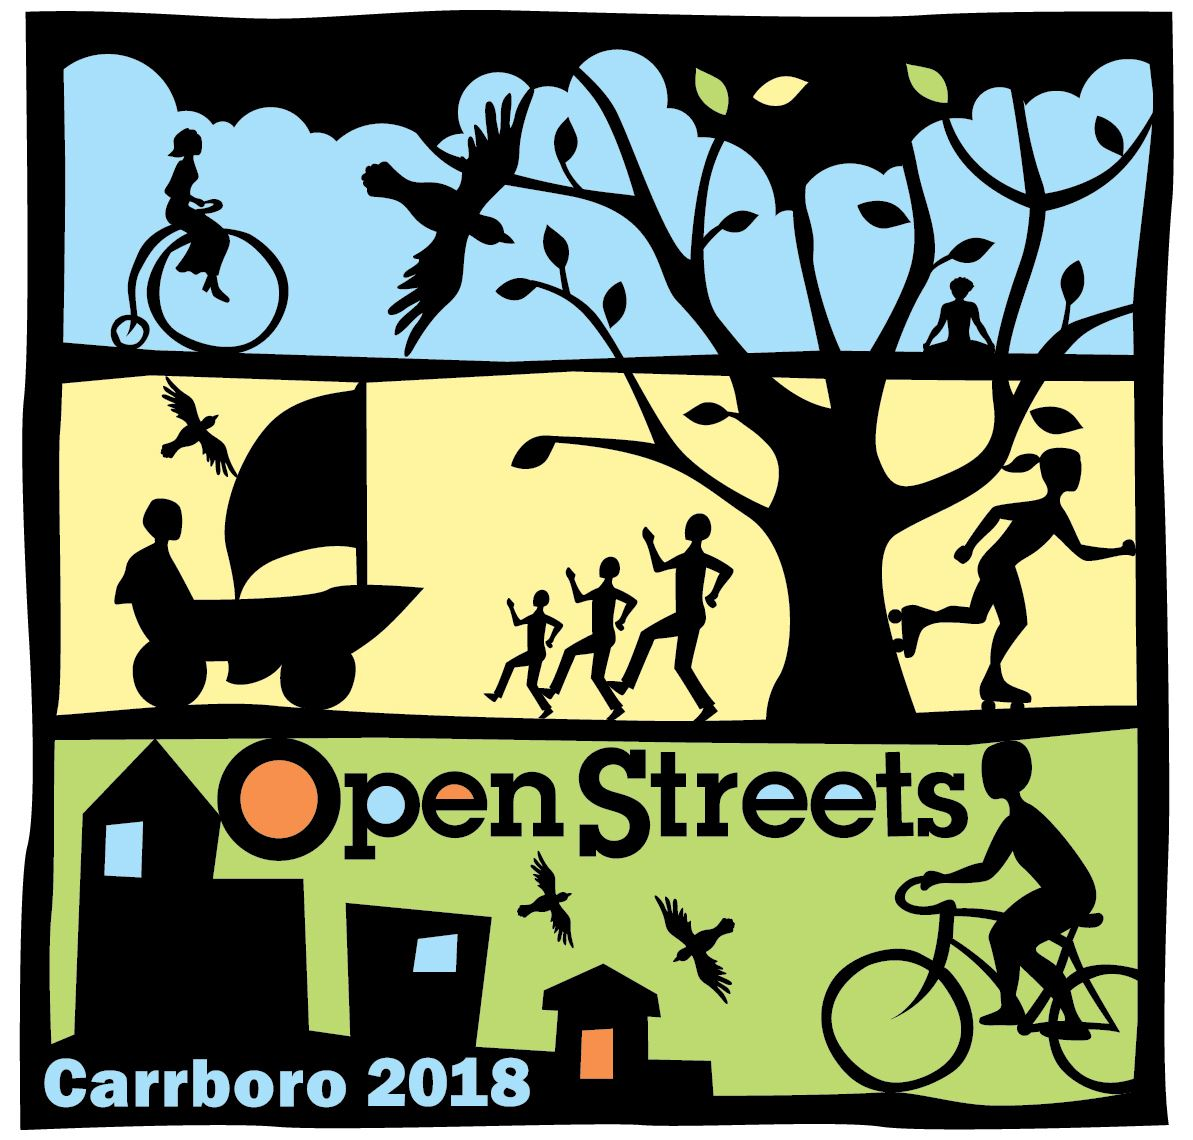 2018 Carrboro Open Streets